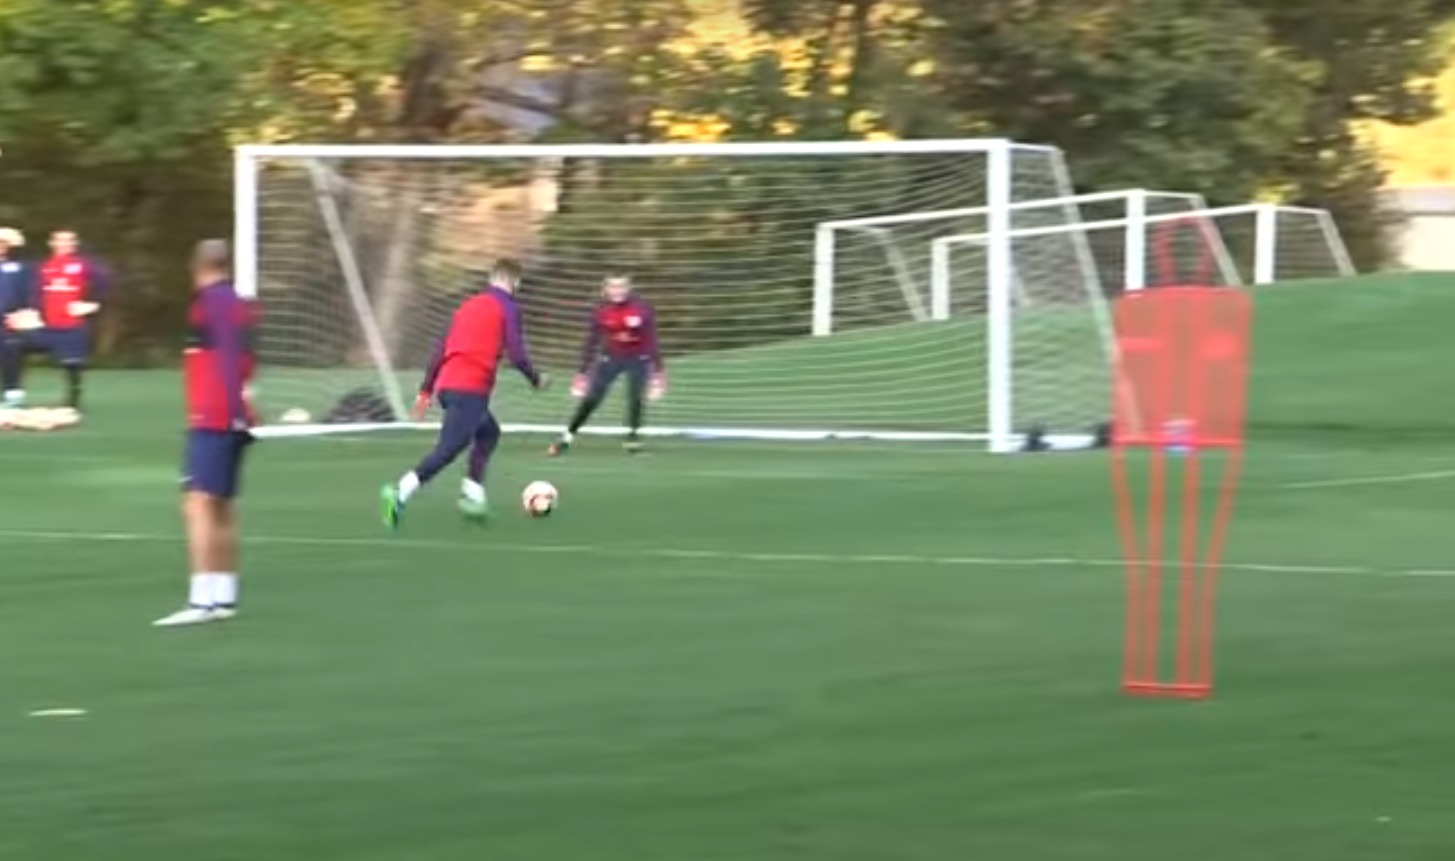 Arsenal star Theo Walcott scores outrageous chip from Jack Wilshere assist in England training